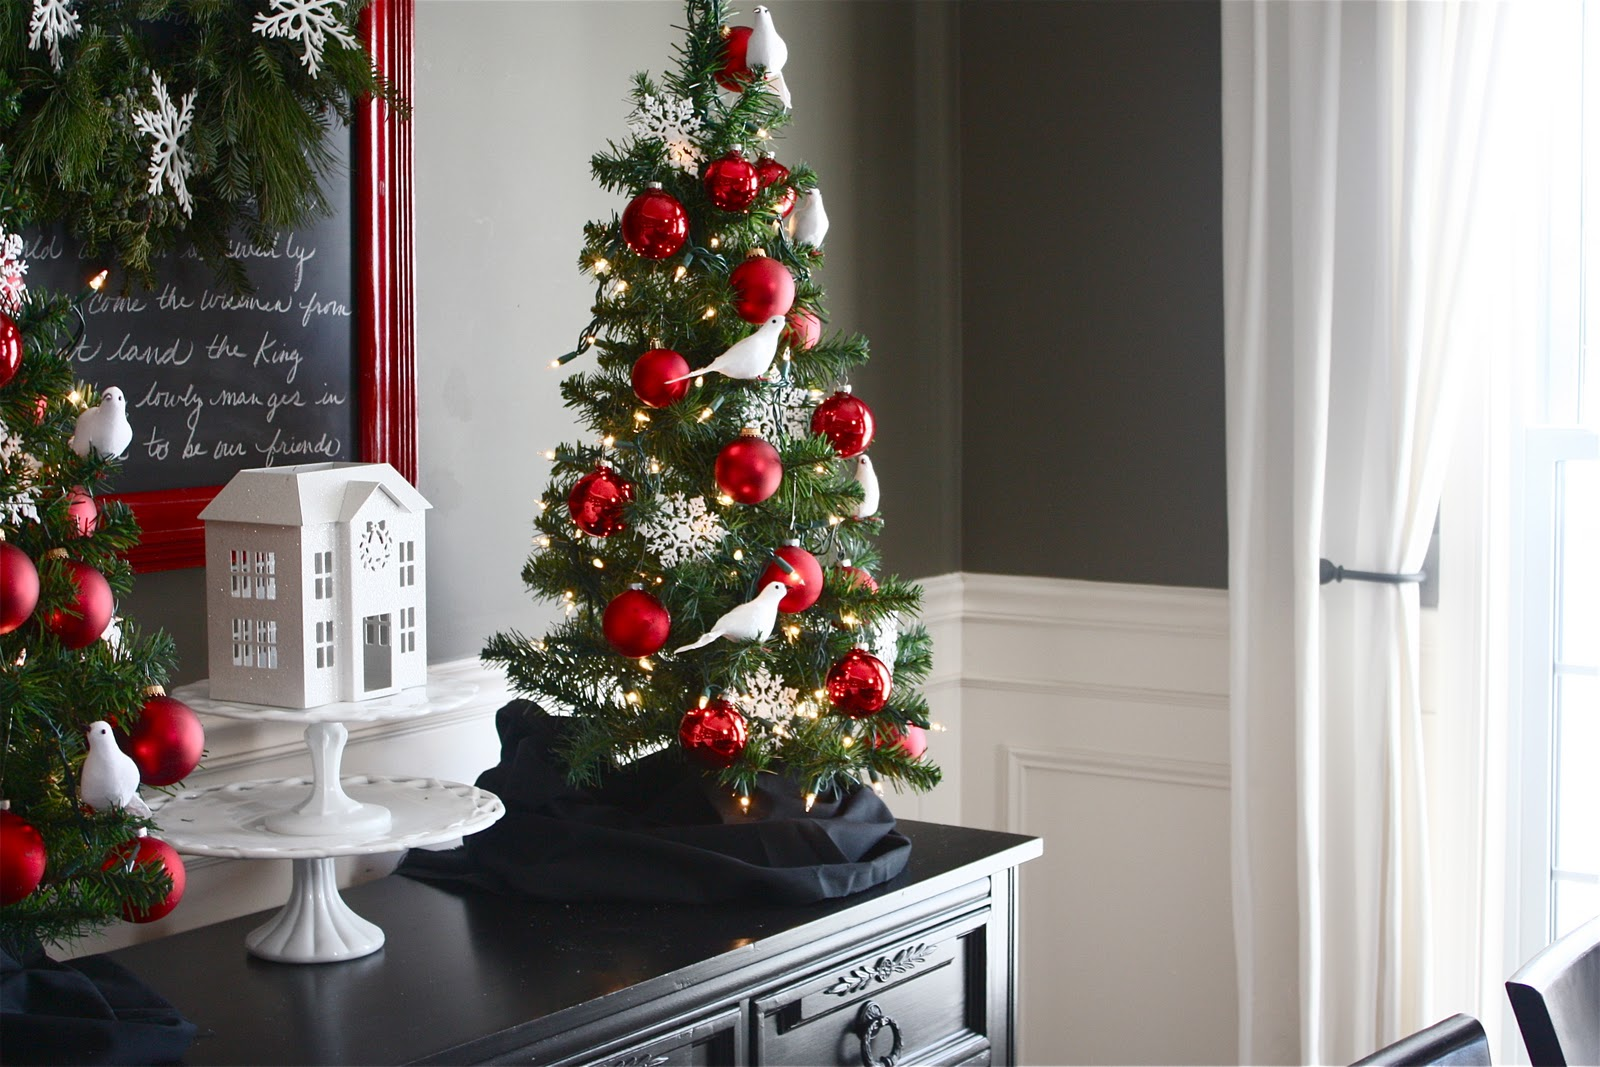 Christmas decoration ideas for a small house - Christmas Decorating Ideas Cape Cod House